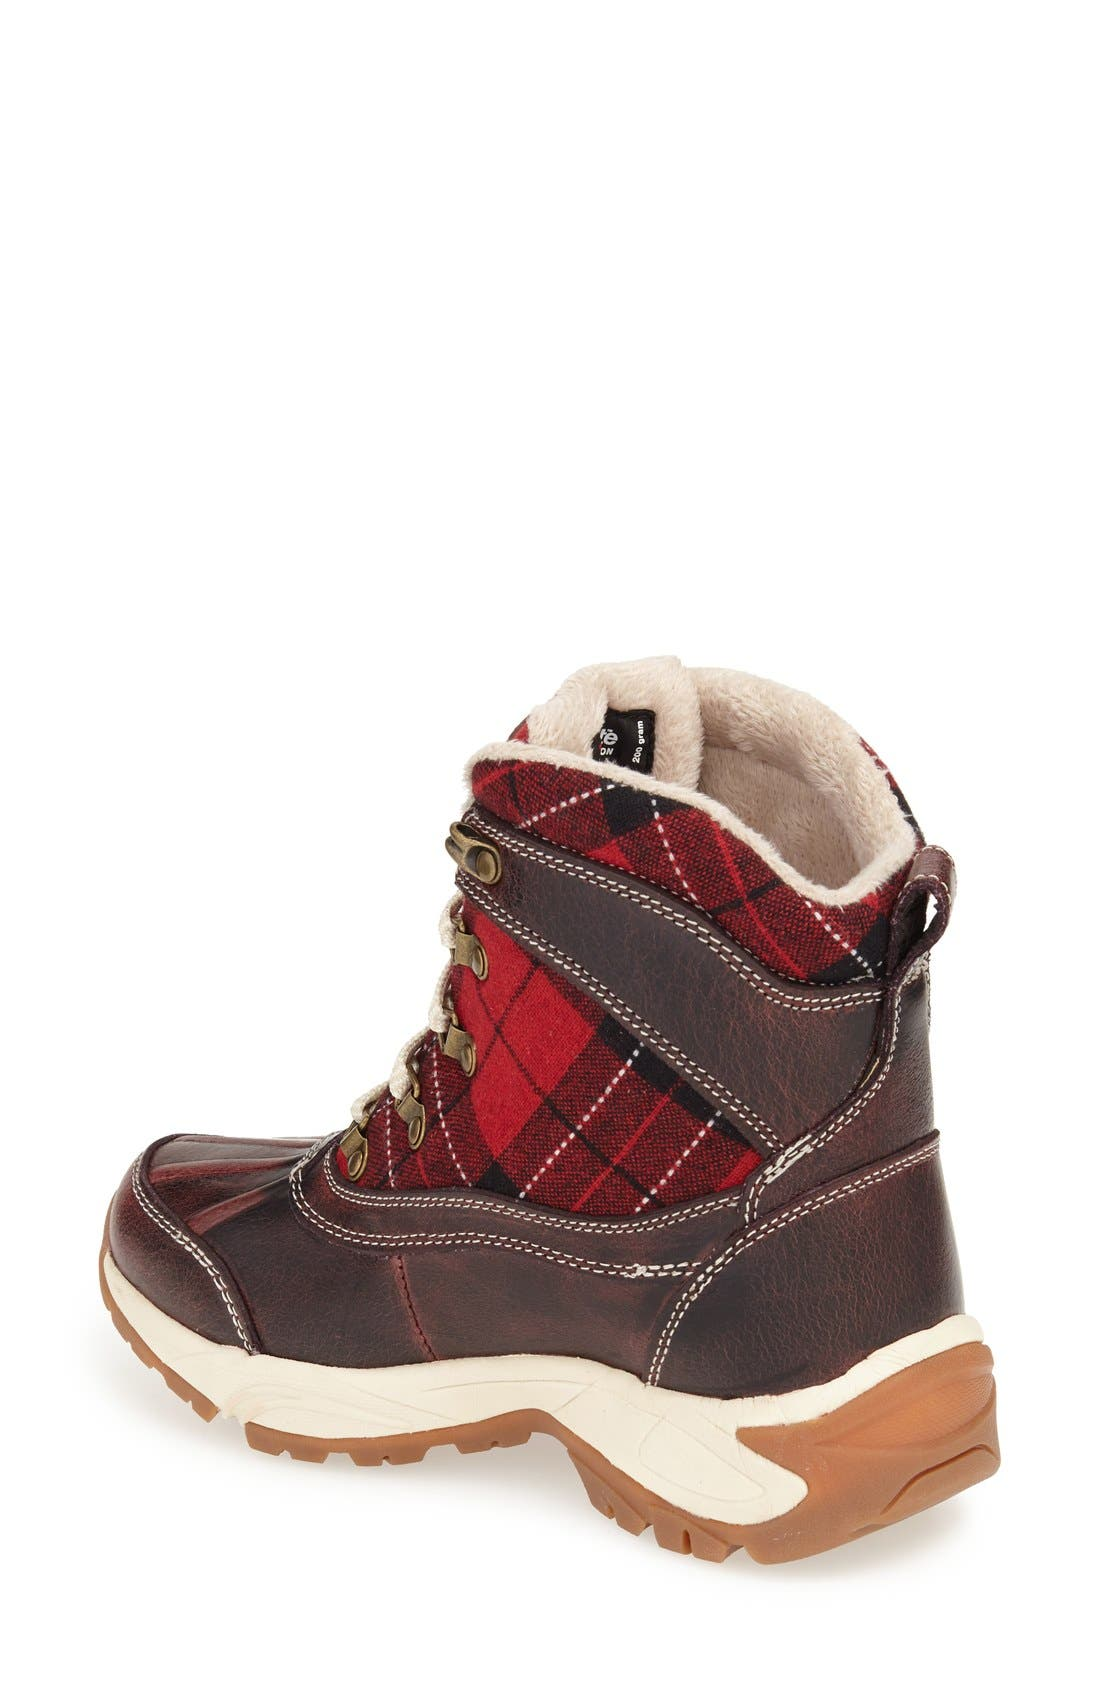 Rochelle Waterproof Insulated Winter Boot,                             Alternate thumbnail 2, color,                             RED PLAID LEATHER